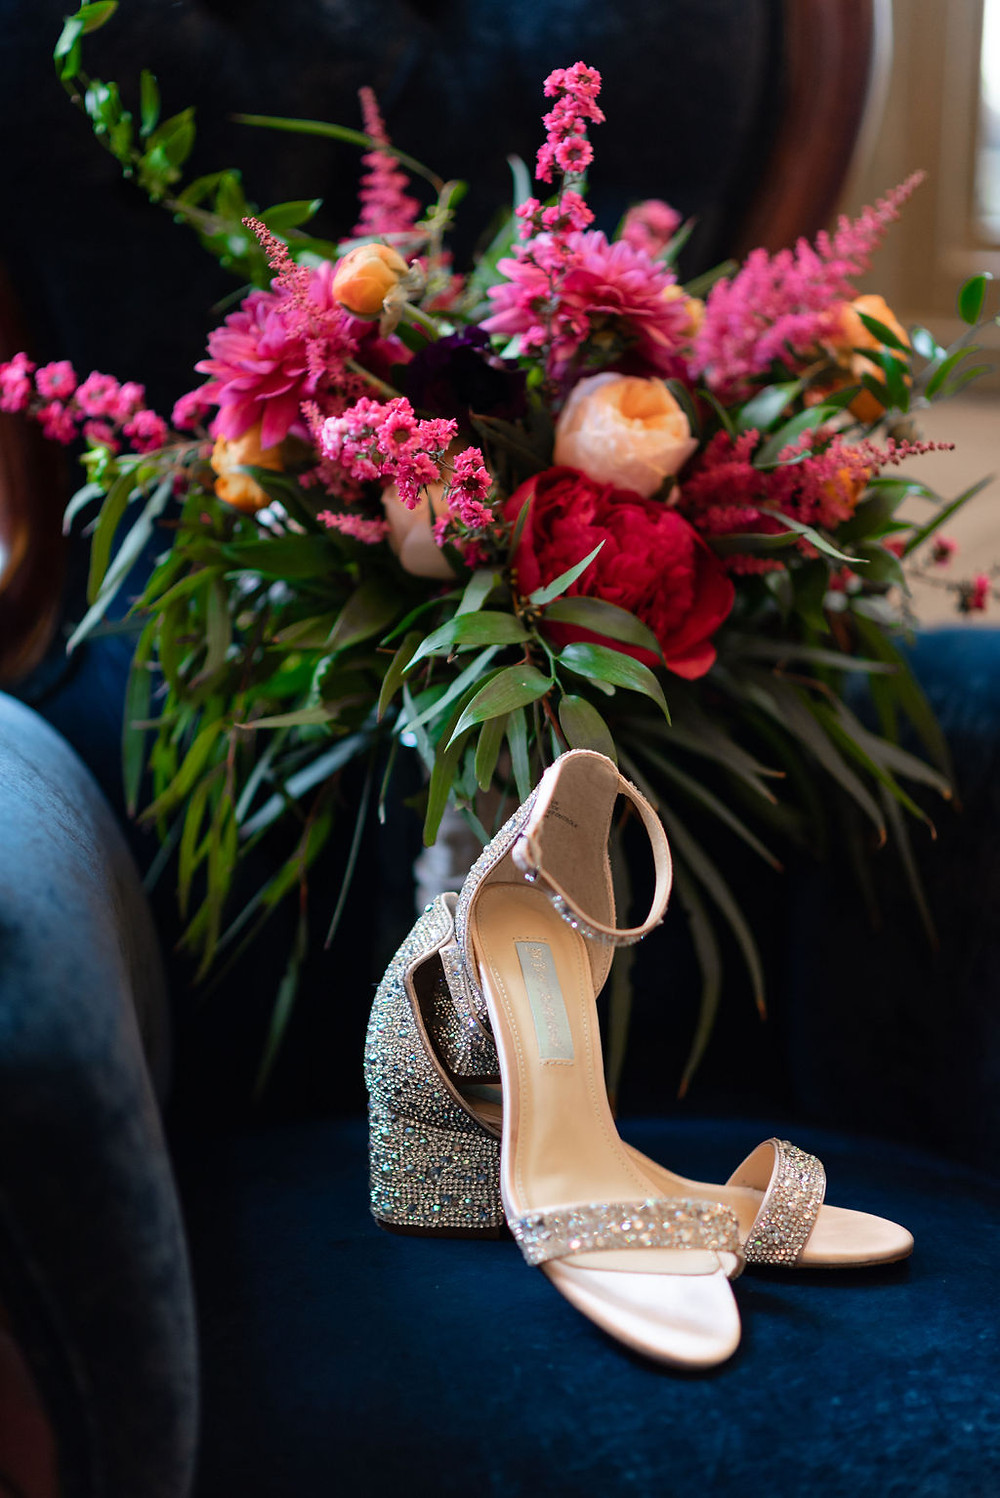 pink bridal bouquet on blue velvet chair with wedding shoes displayed. chat is in the foyer at villa antonia